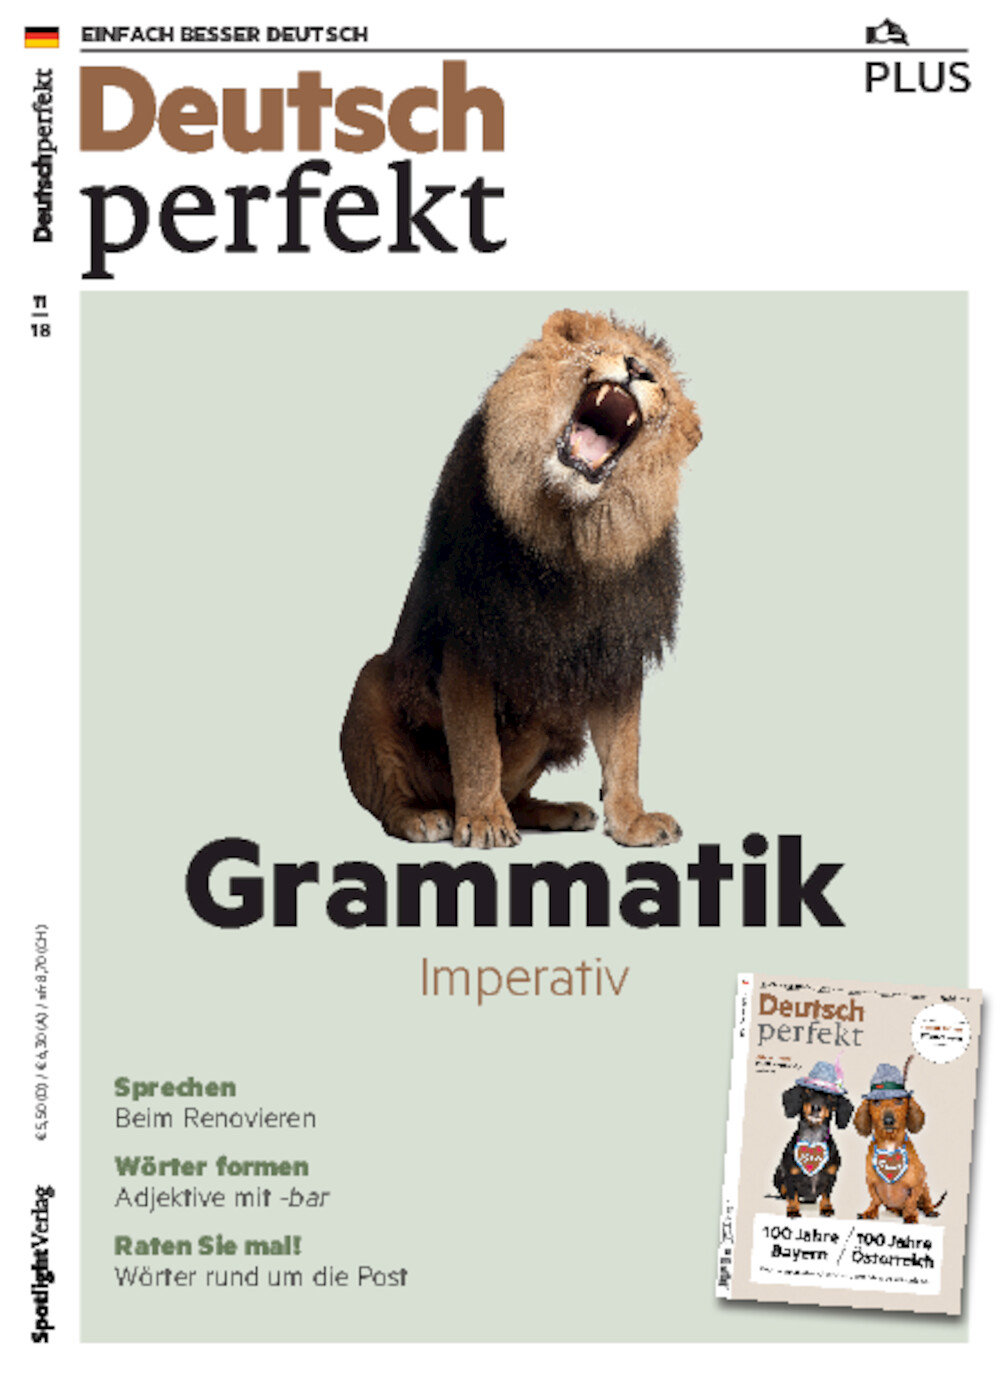 Deutsch perfekt PLUS ePaper 11/2018